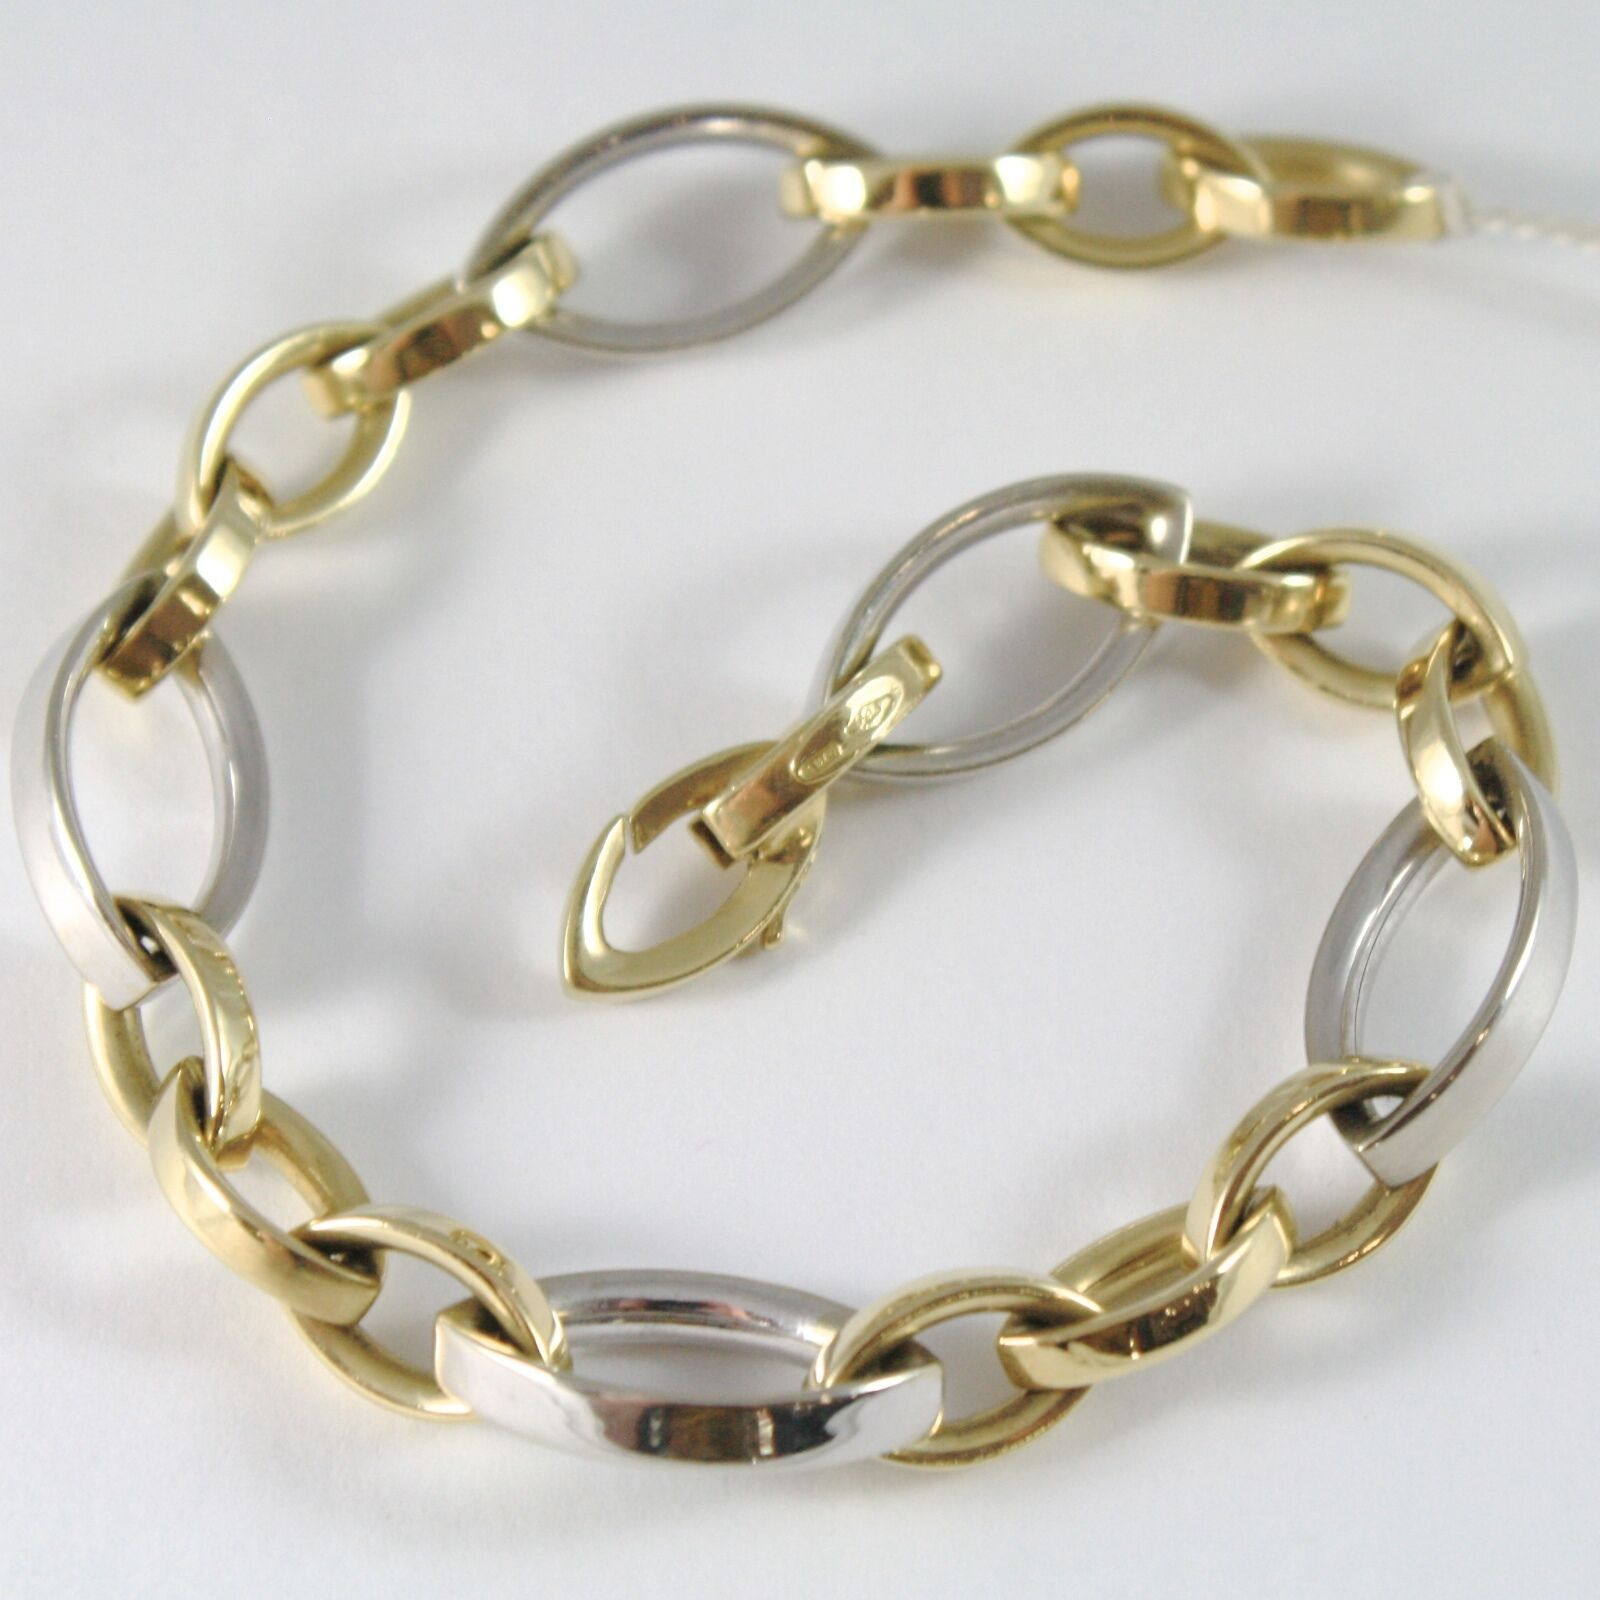 Solid Bracelet in Gold Yellow White 750 18k with ALTERNATING OVAL, 21 cm